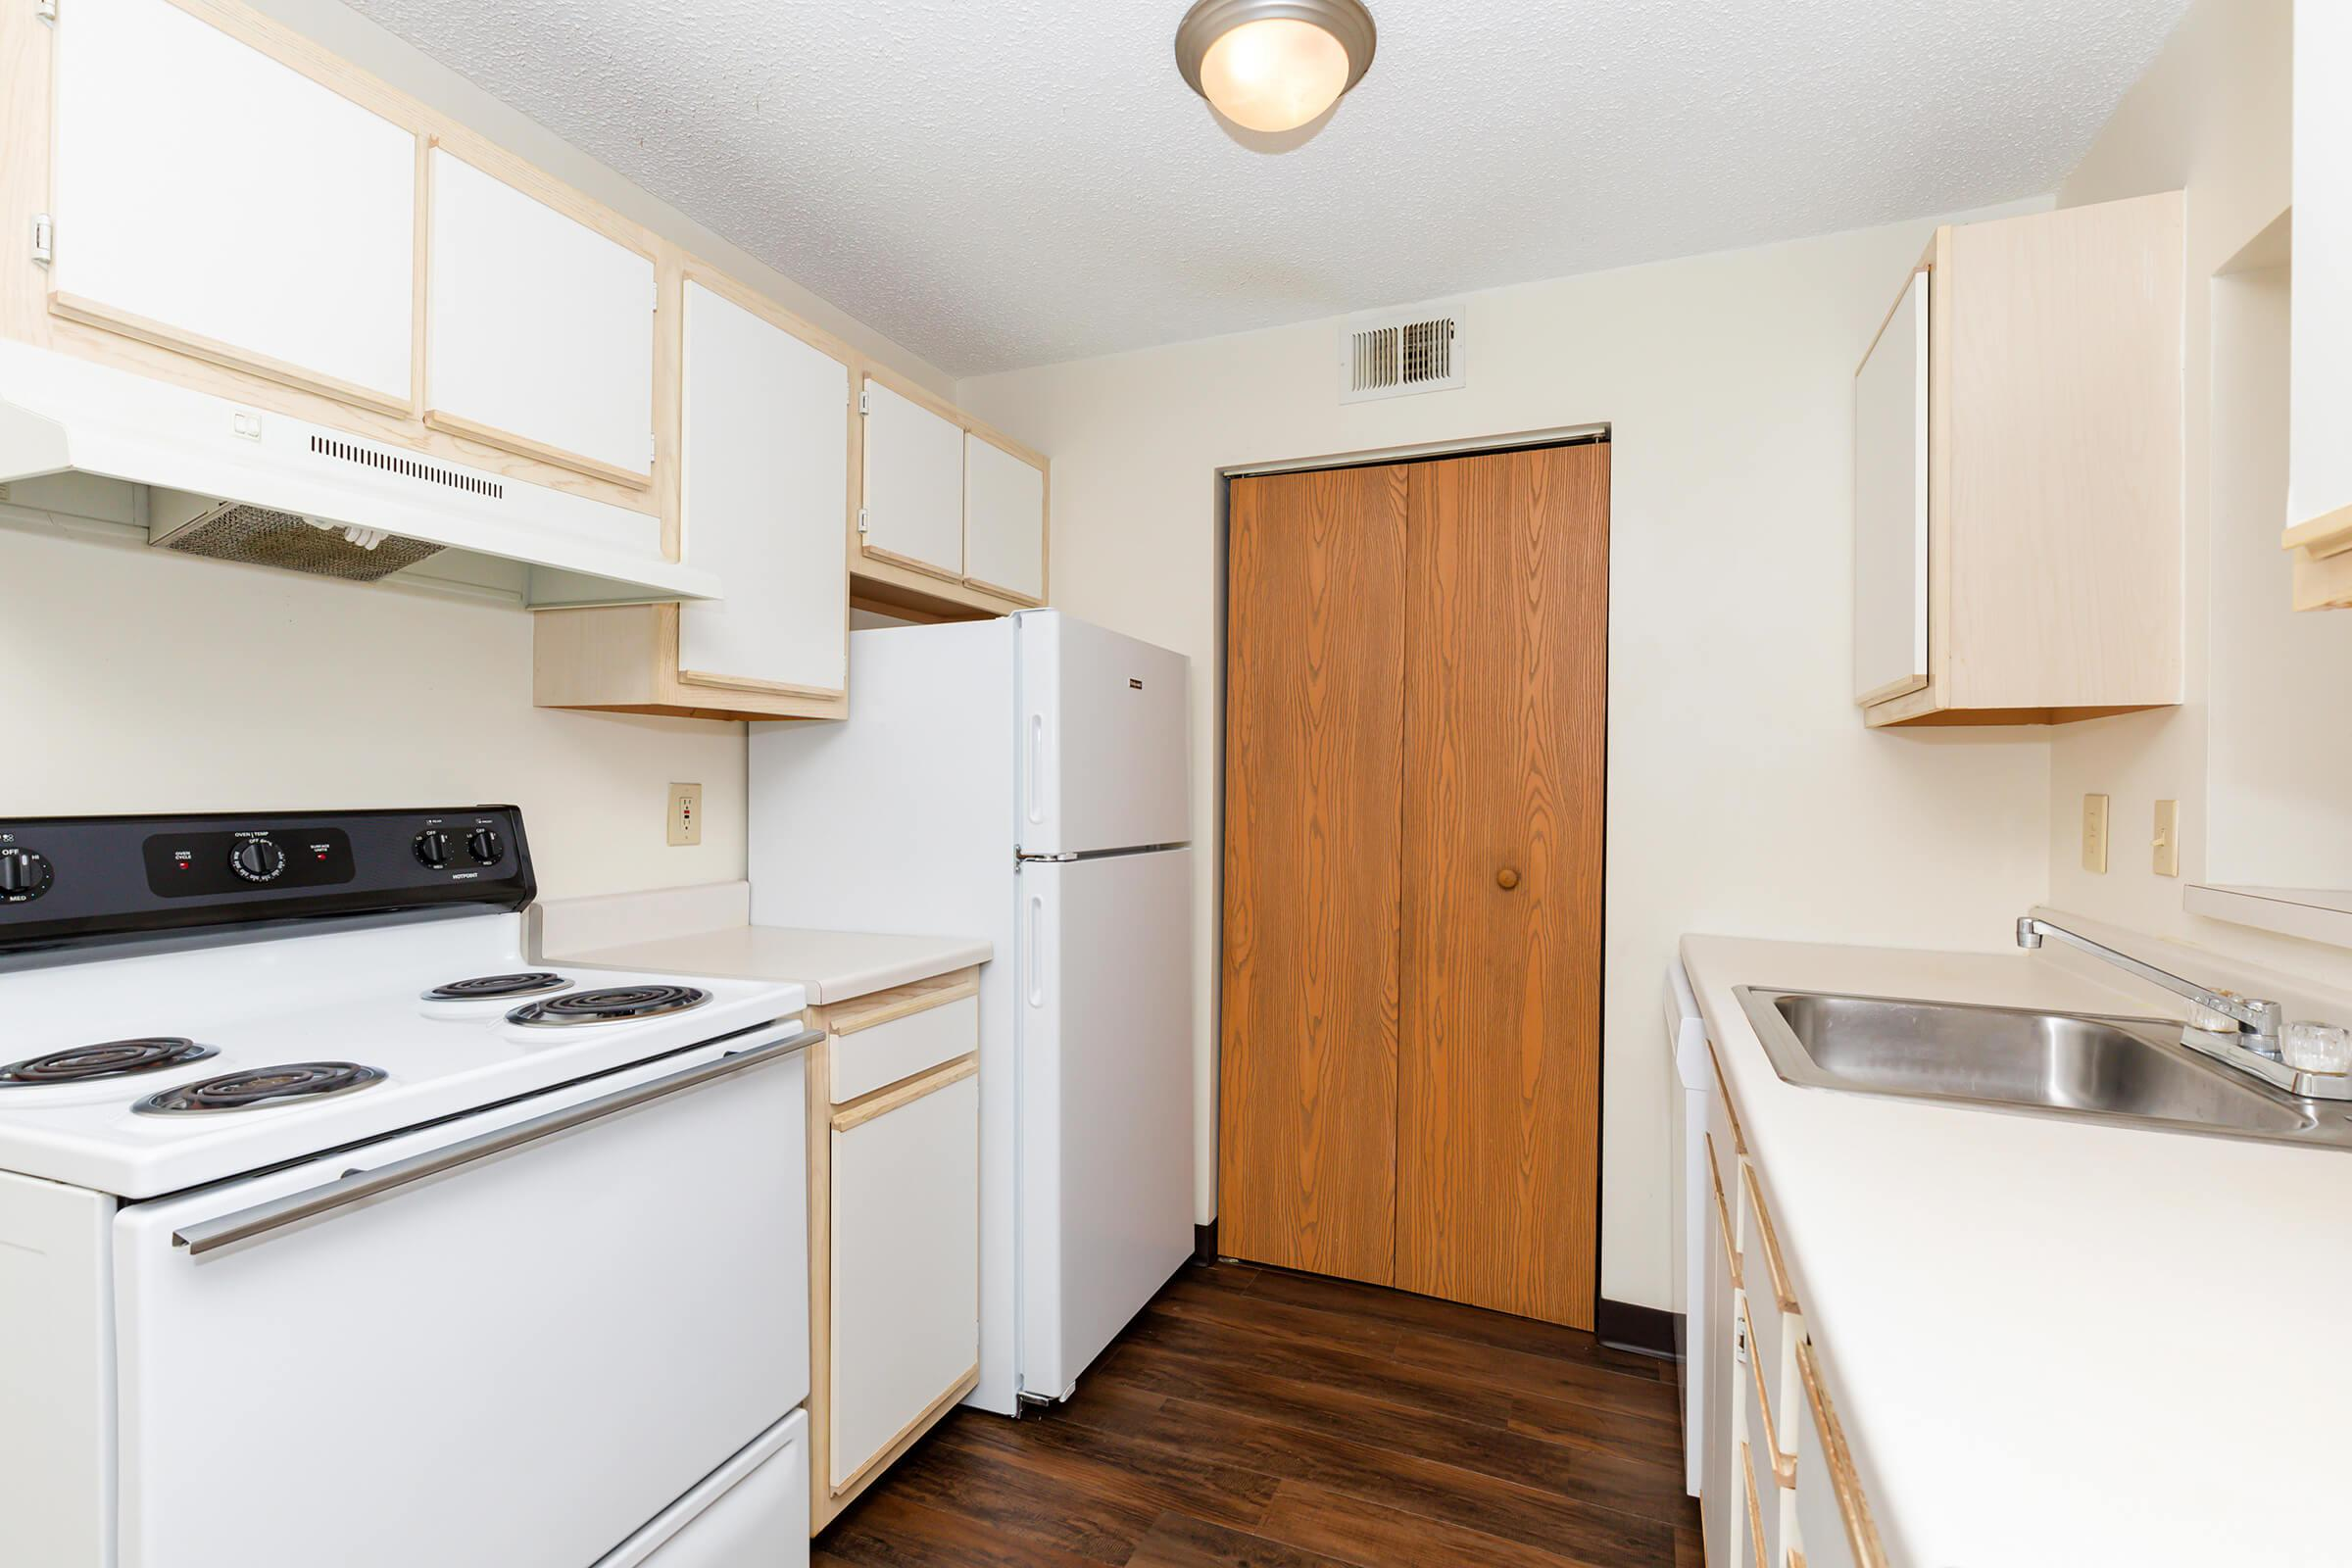 a kitchen with a stove oven and refrigerator